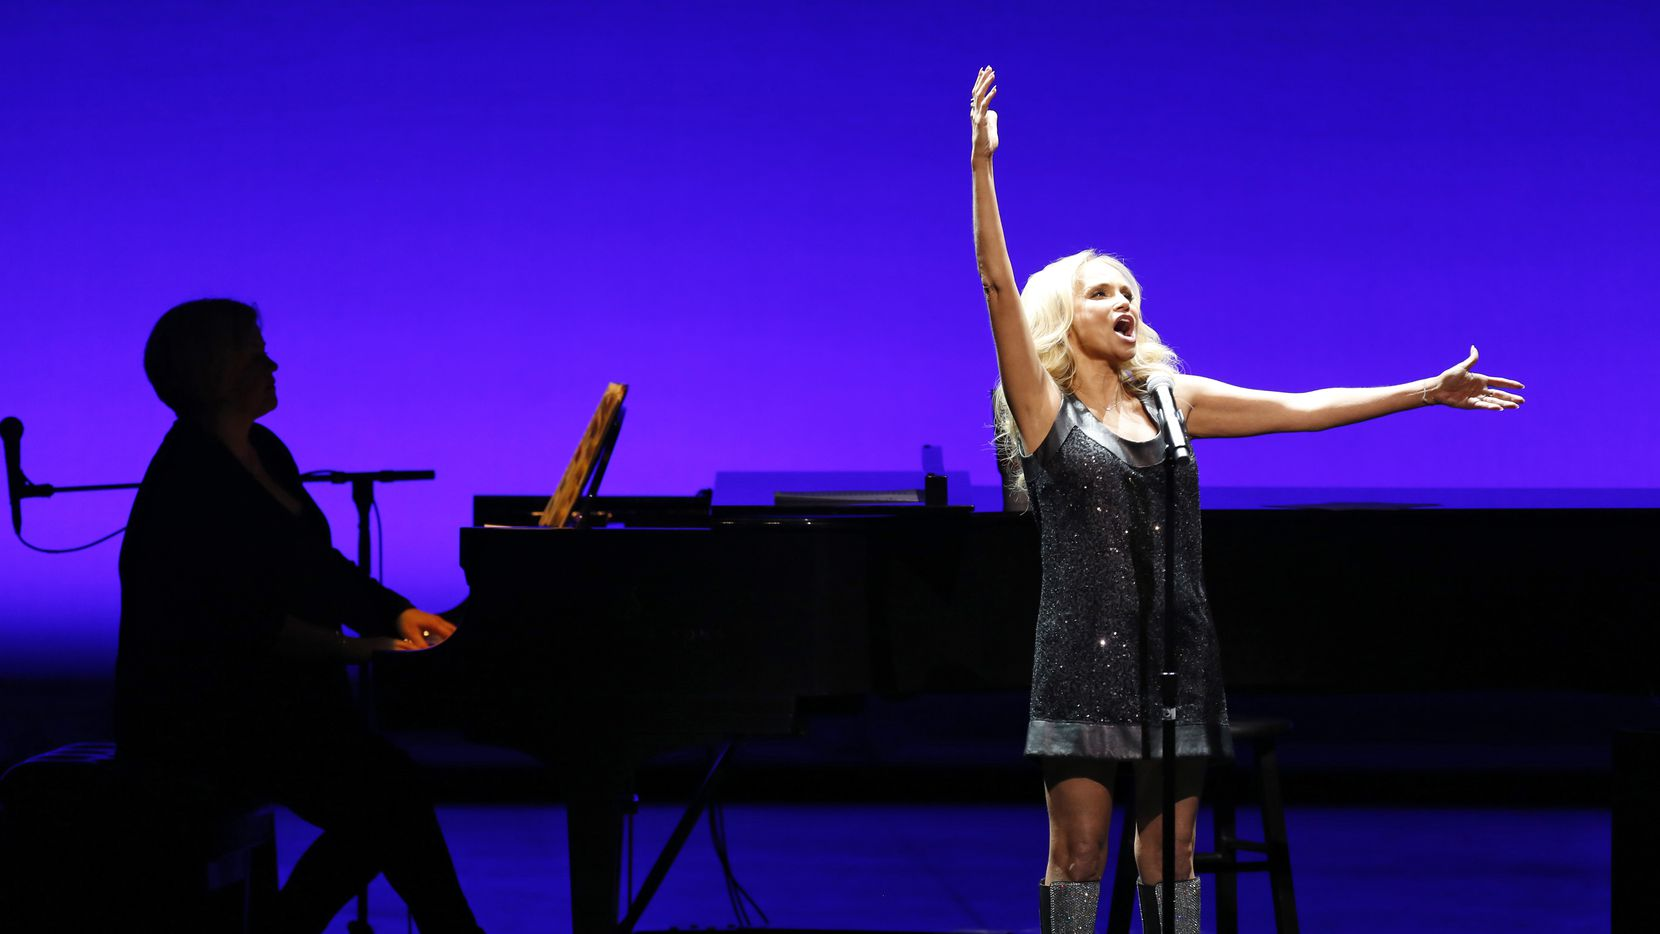 Kristin Chenoweth sings during her performance at Winspear Opera House in Dallas in 2017.